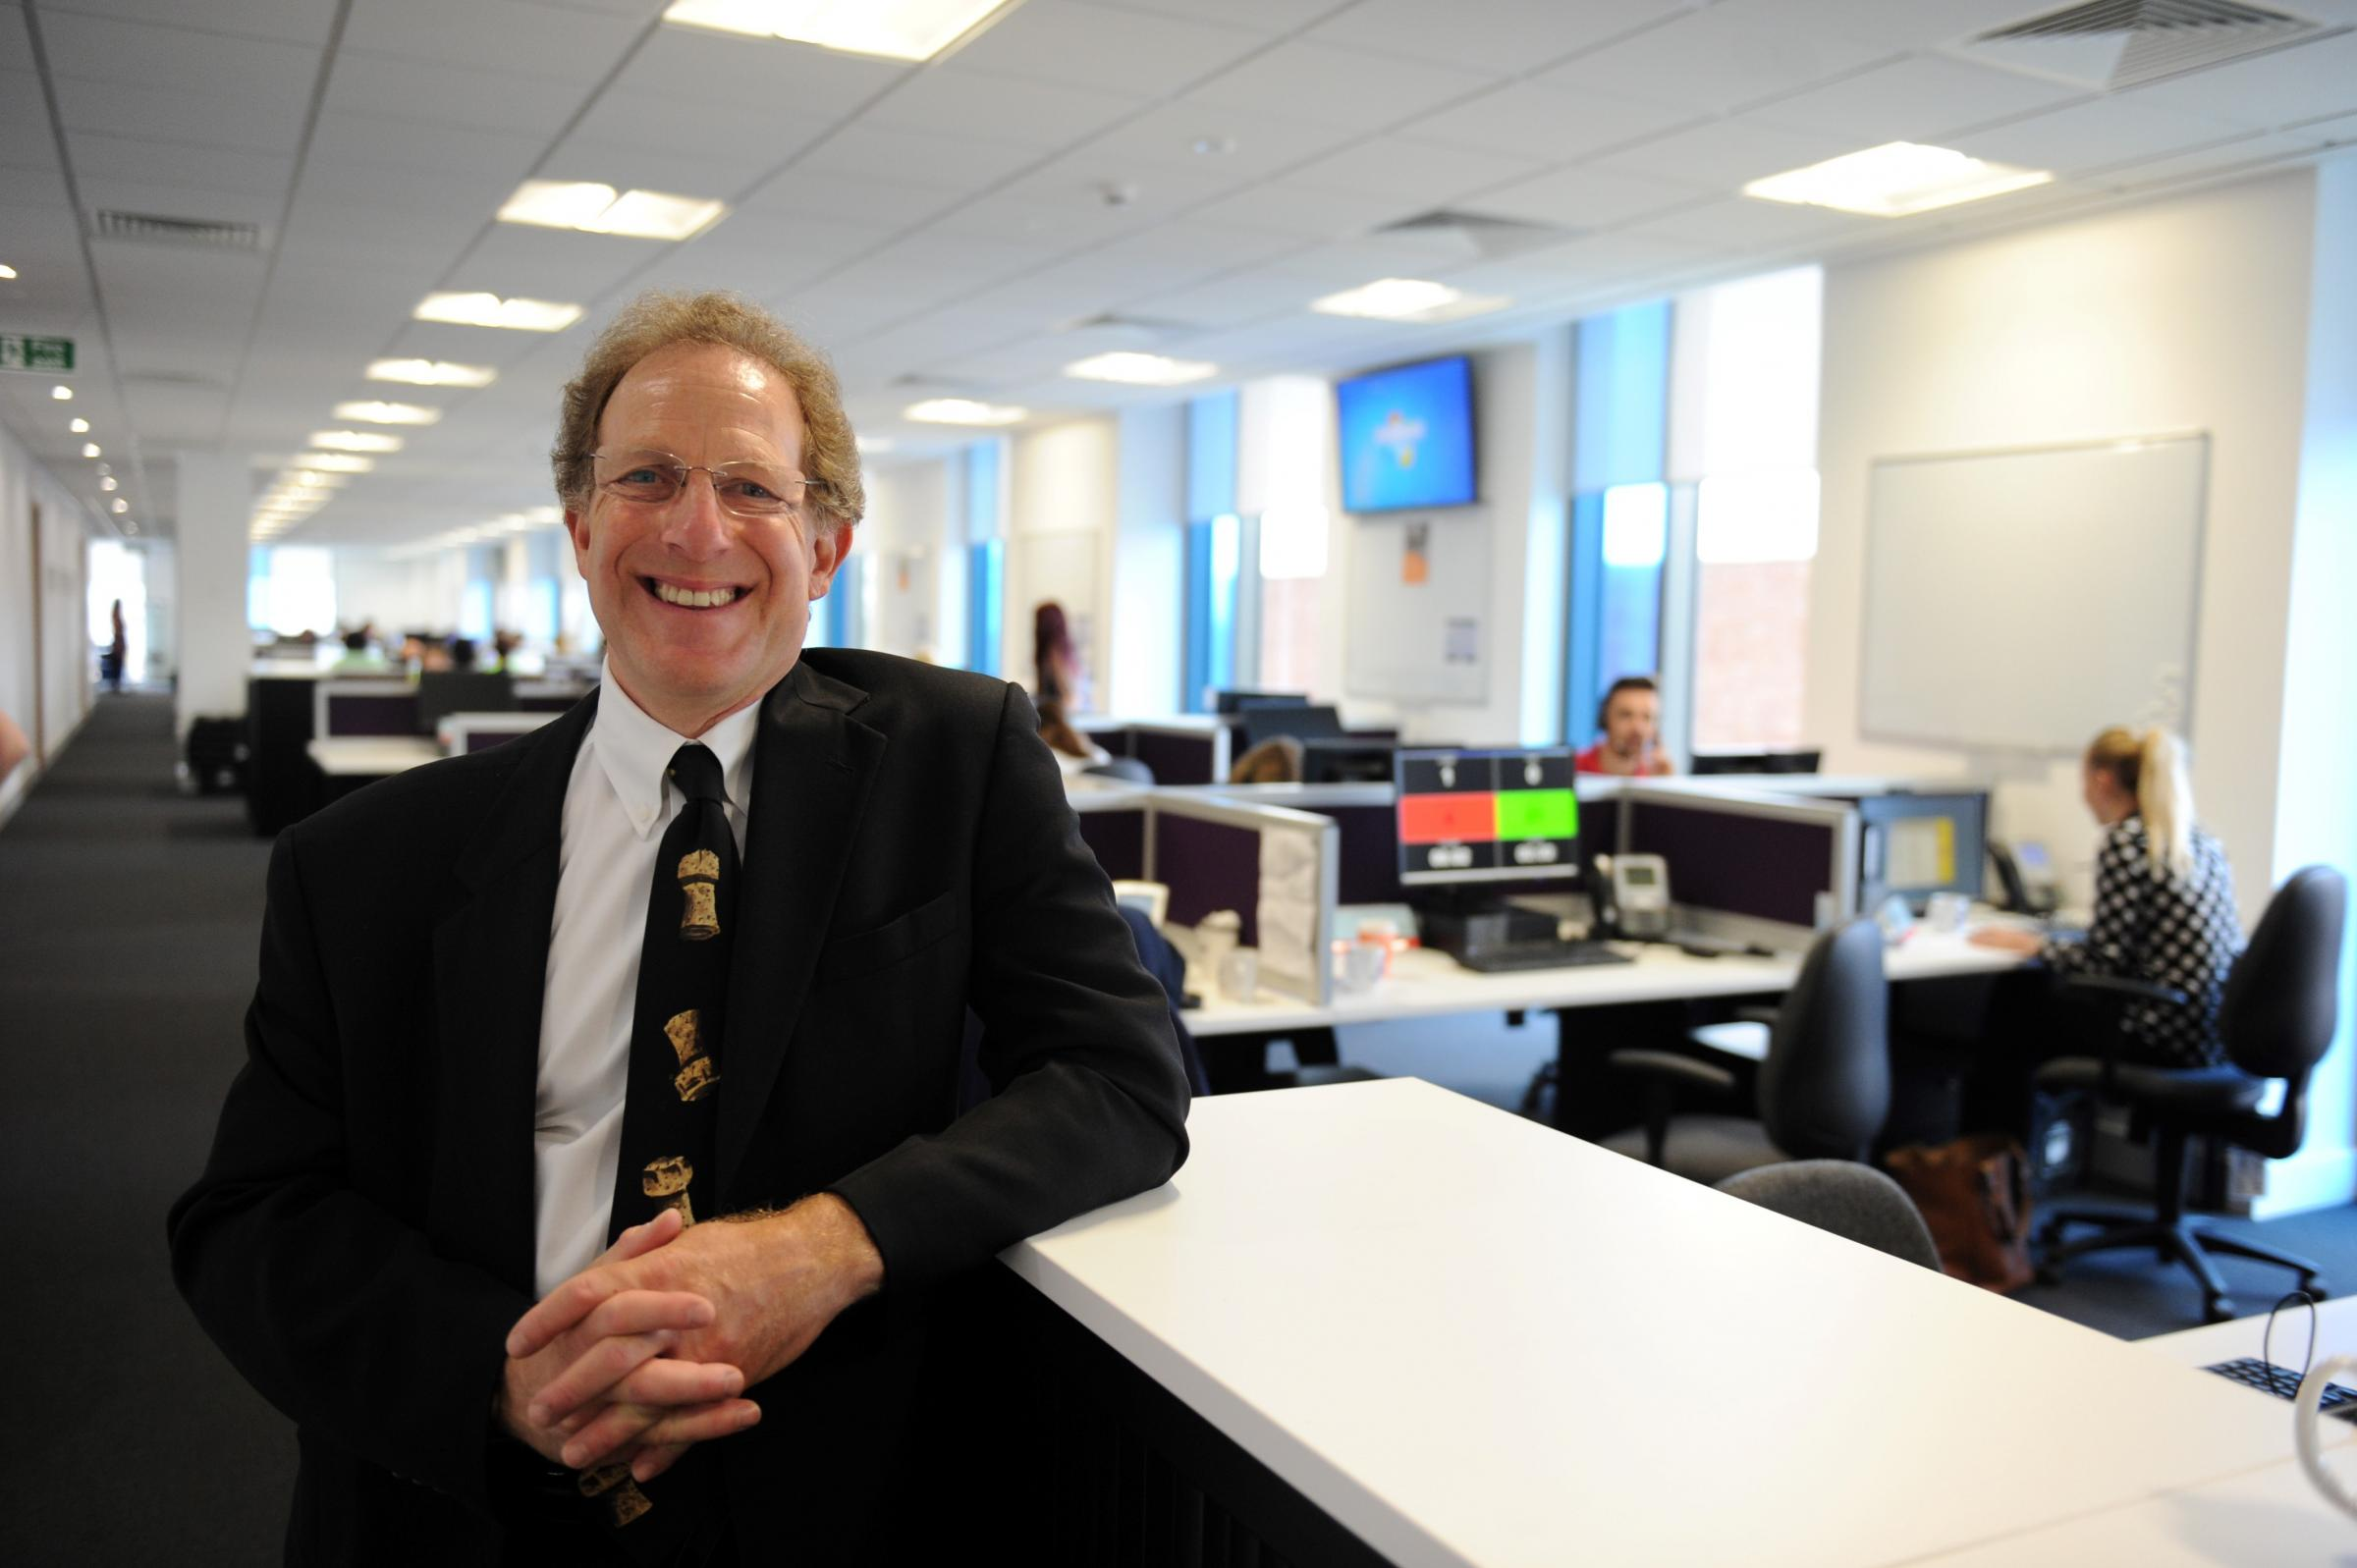 Newport welcomes Admiral as staff move into new offices